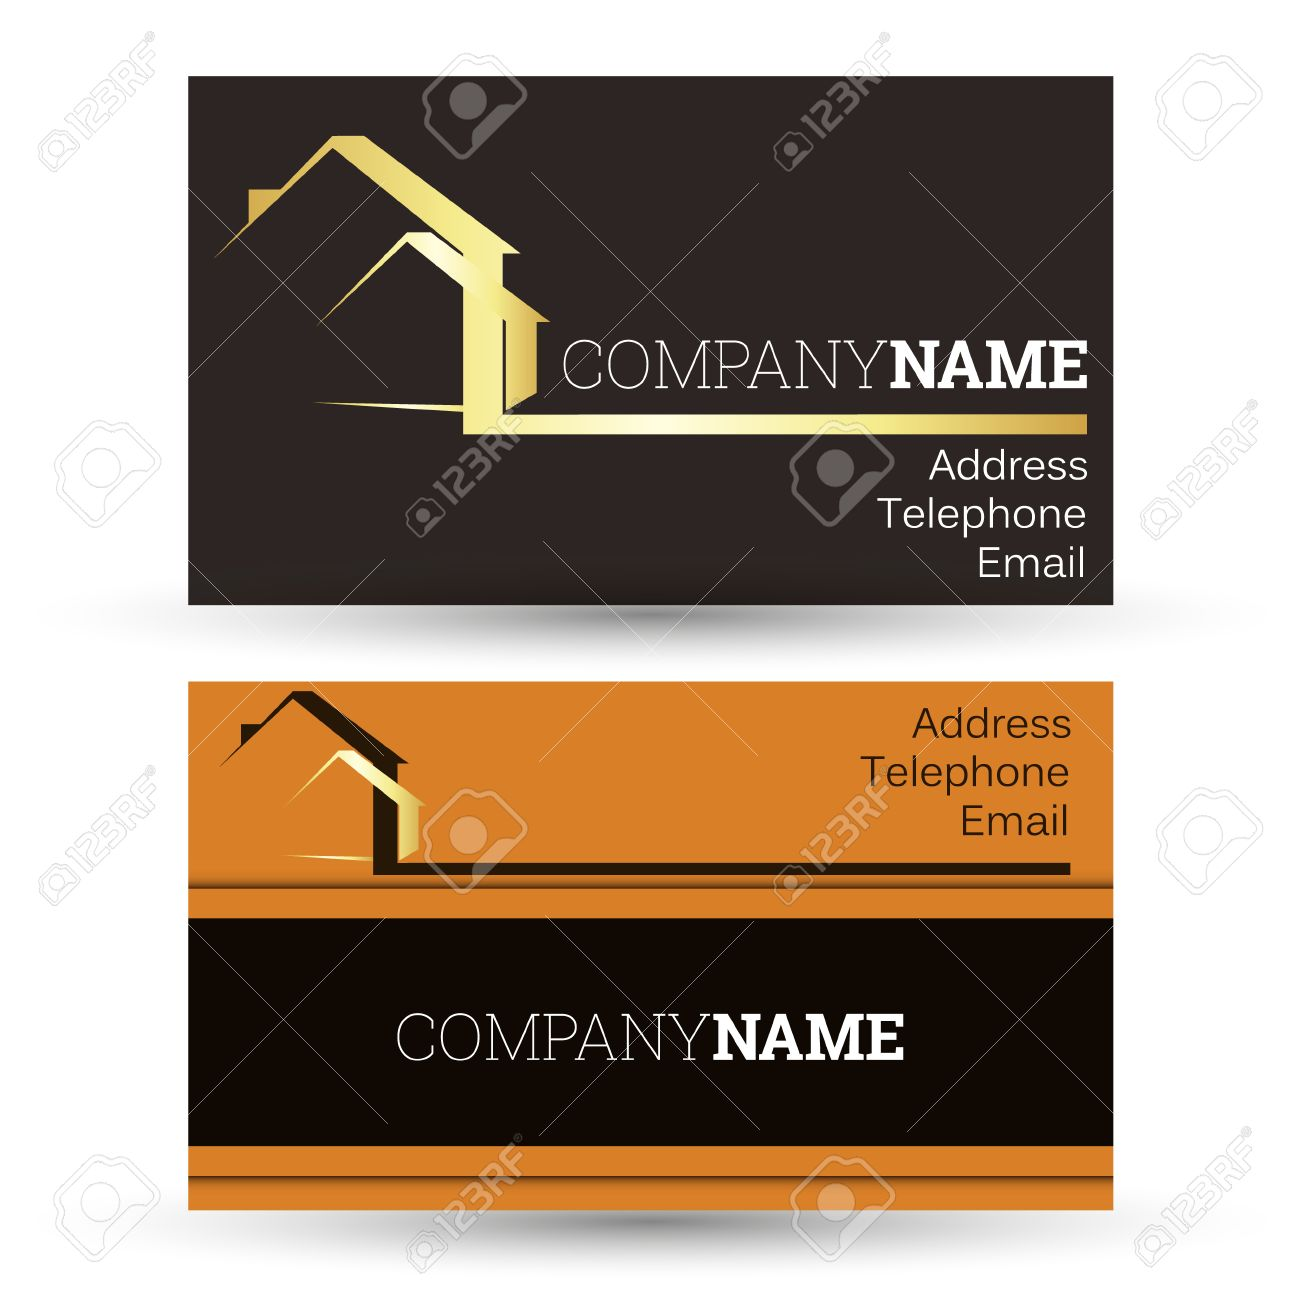 construction and sale of housing business card business royalty